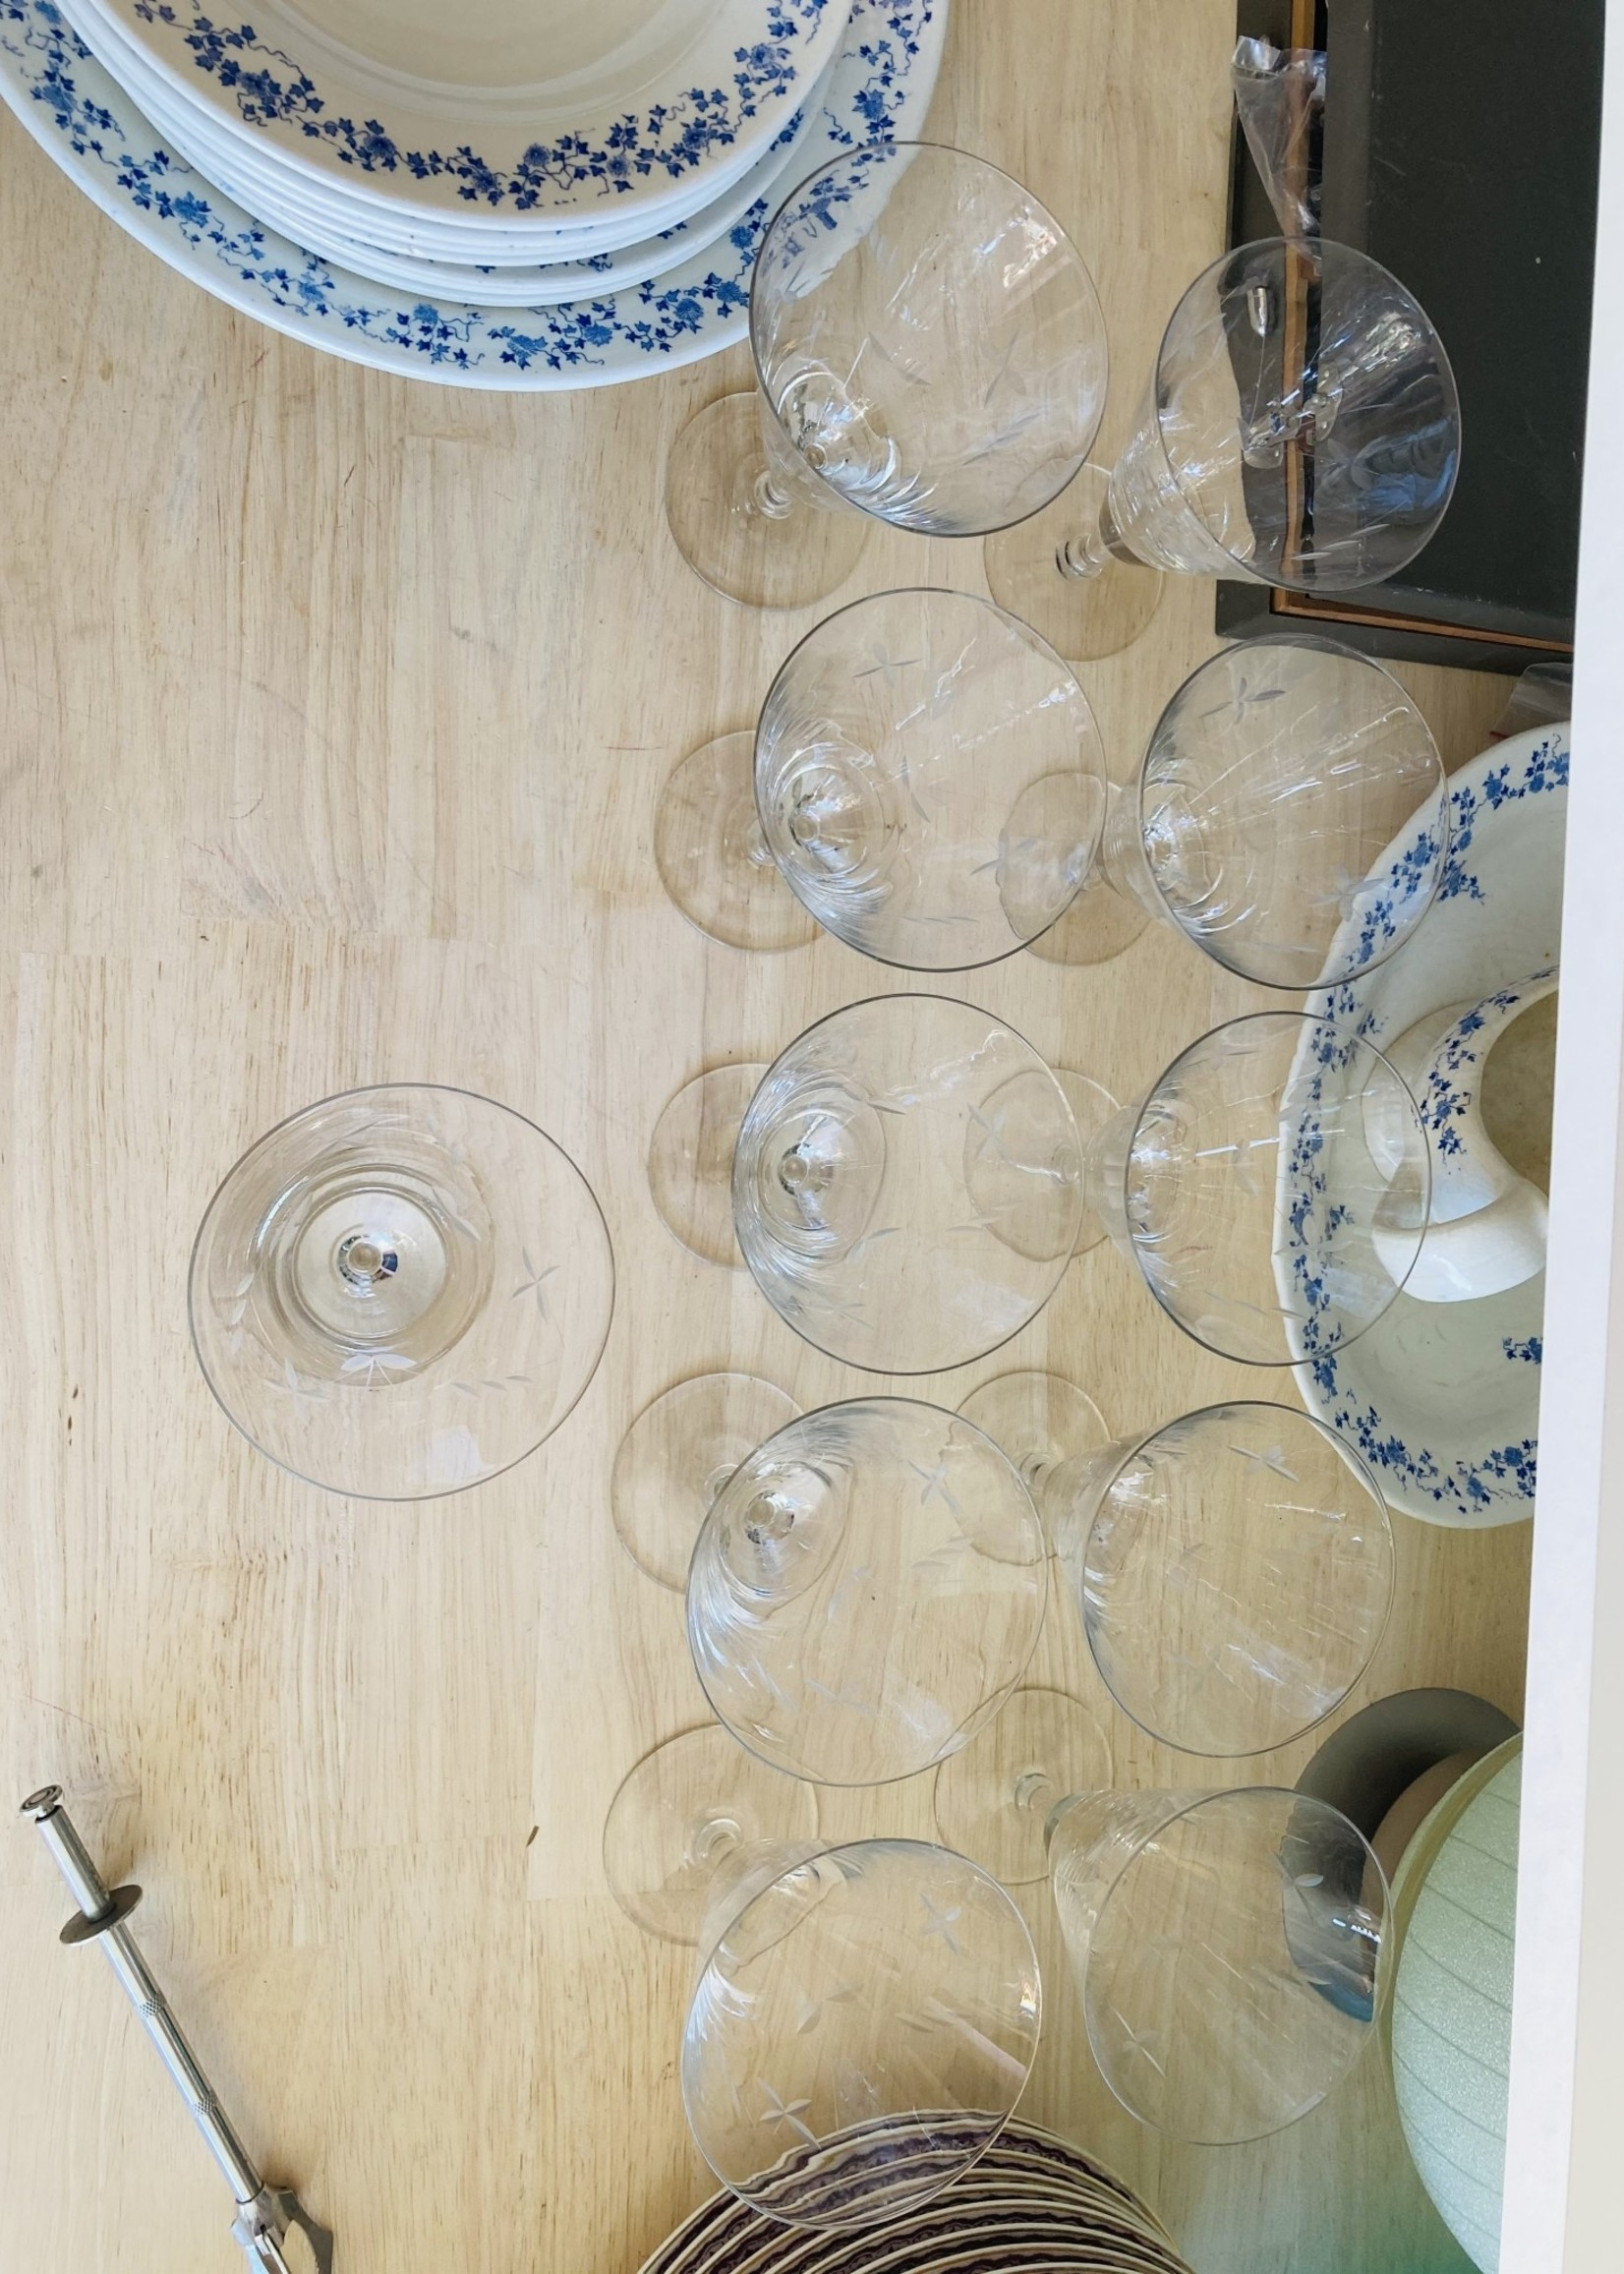 Large conic carved crystal water glasses